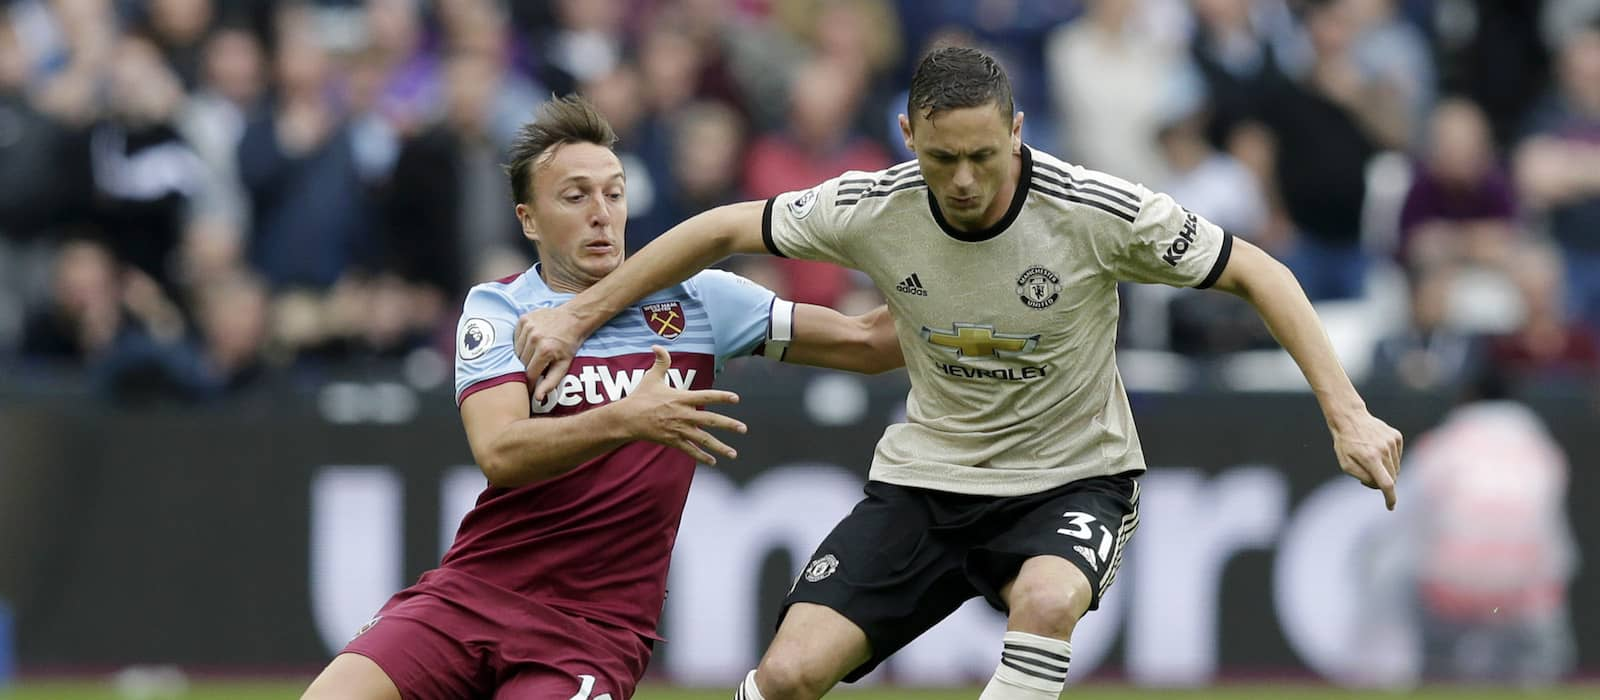 Manchester United's Nemanja Matic a wanted man amid uncertain future